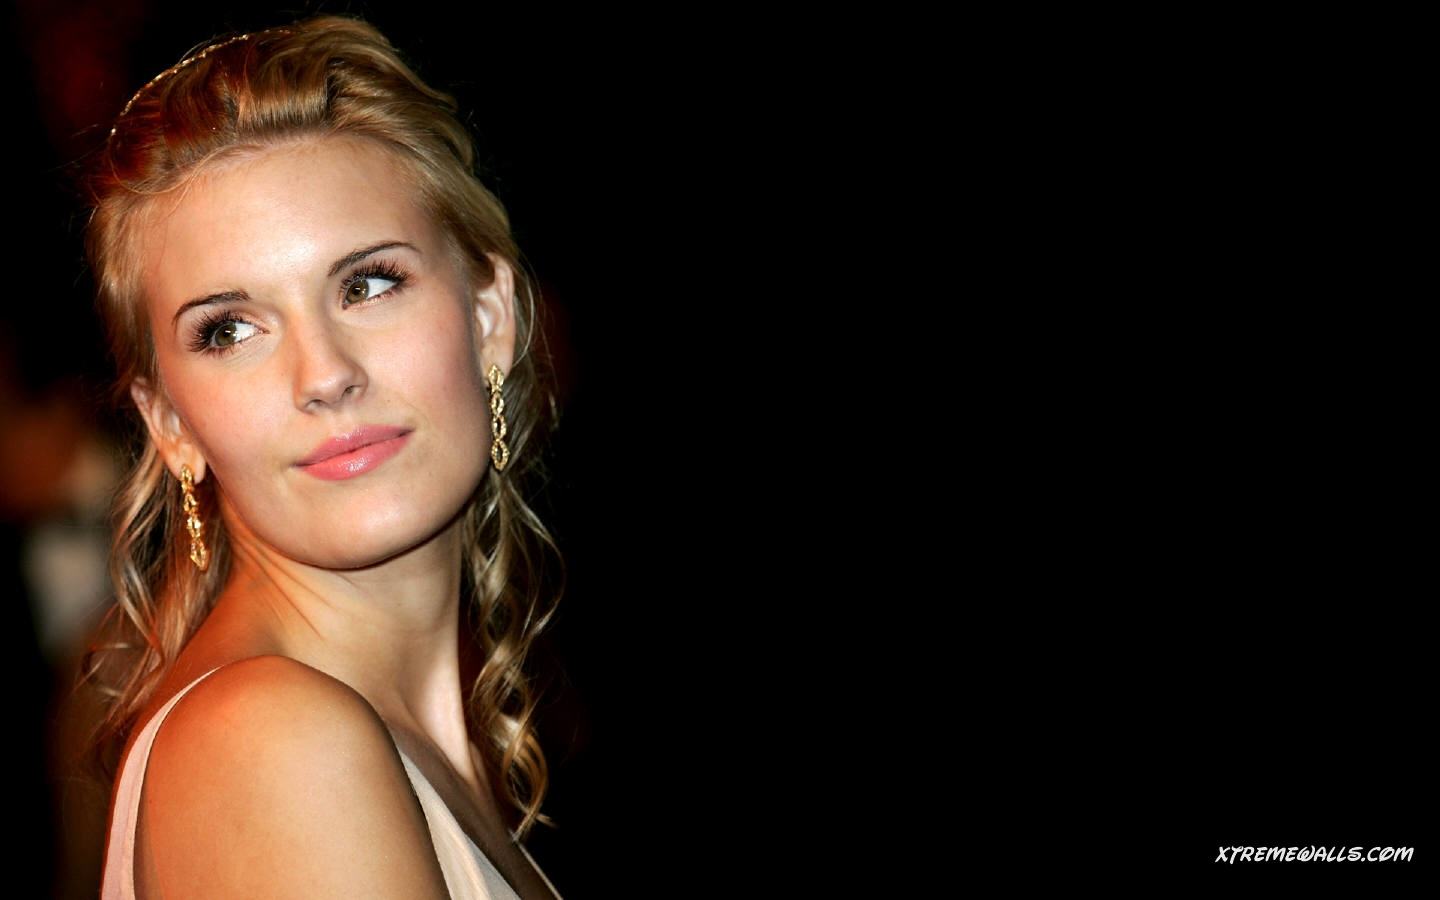 Maggie Grace 1440x900 wallpaper